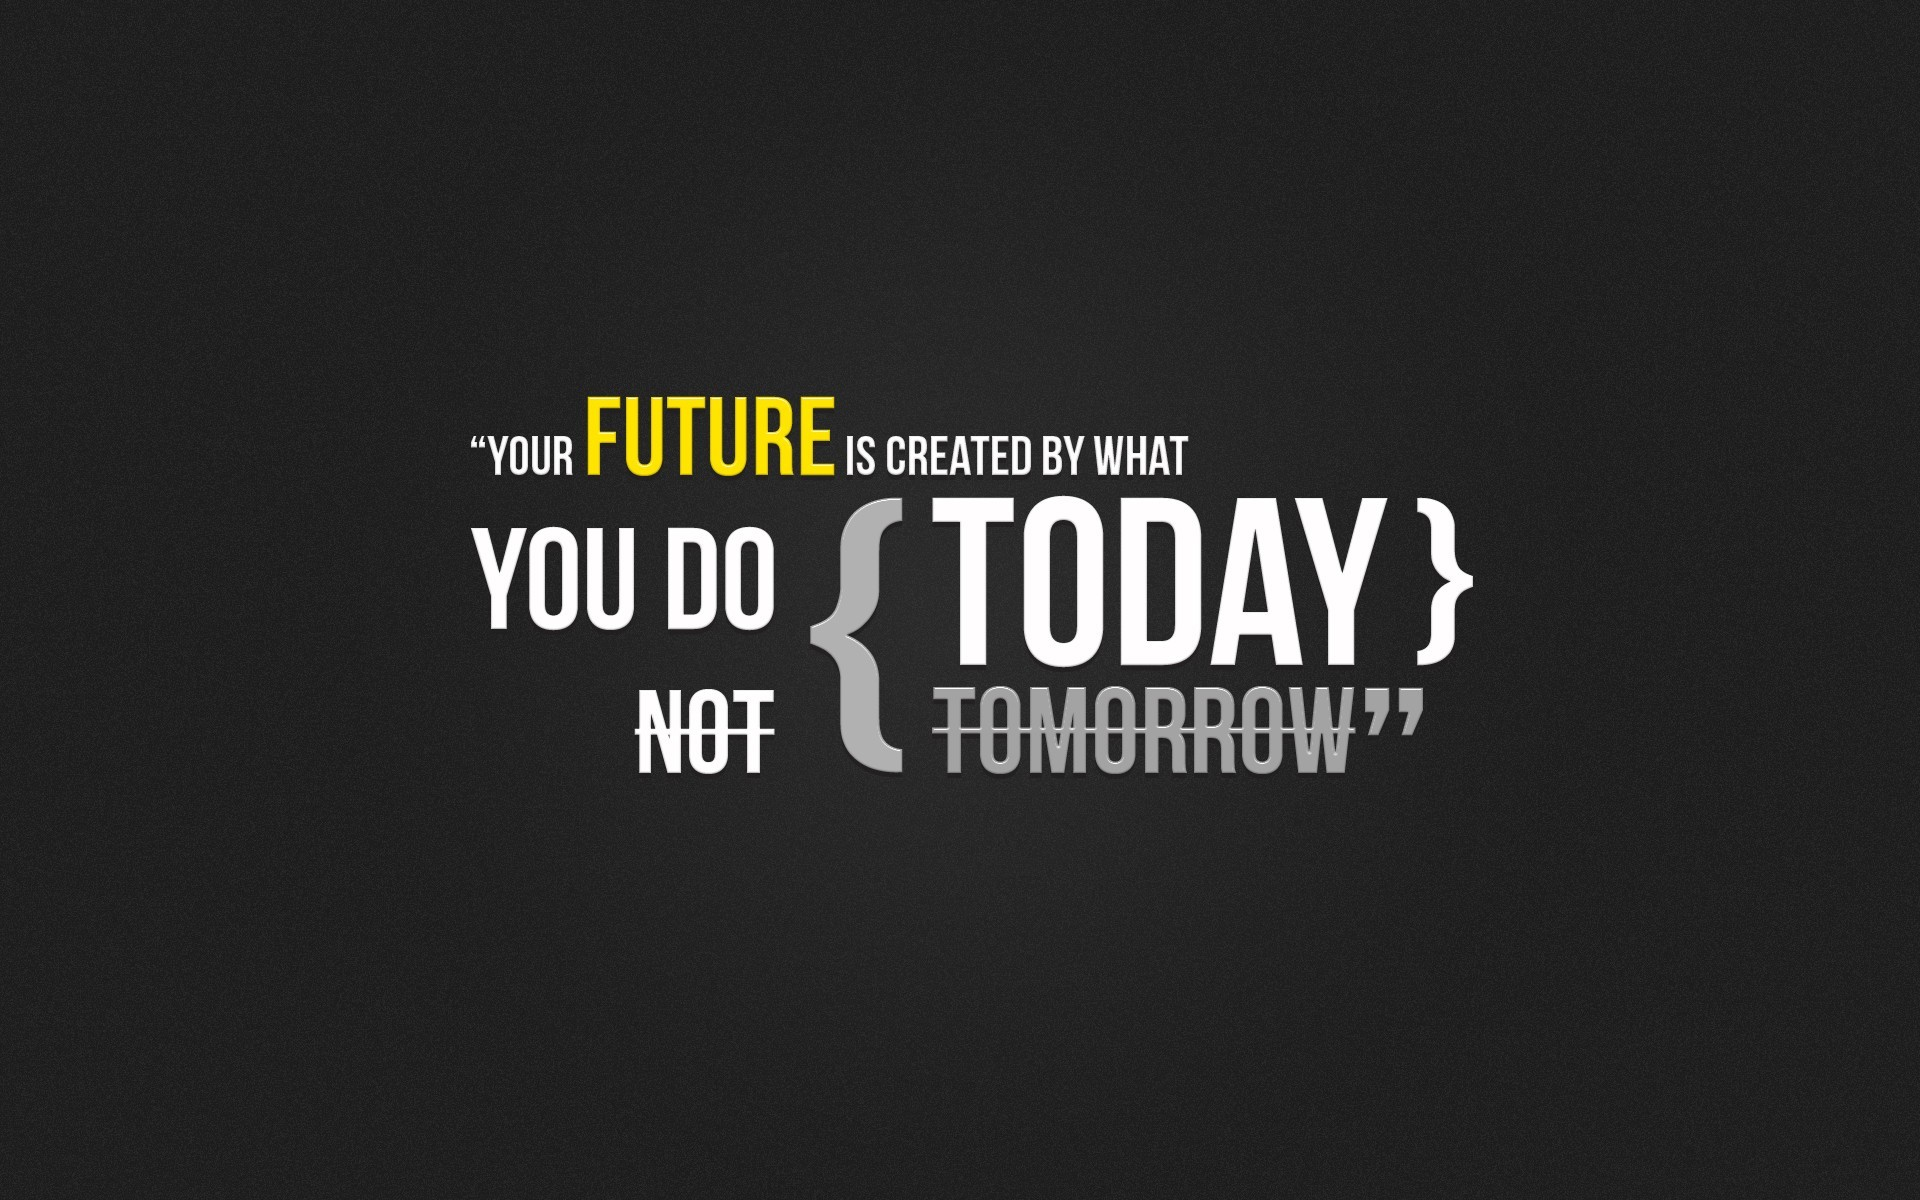 Future is created by what you do today